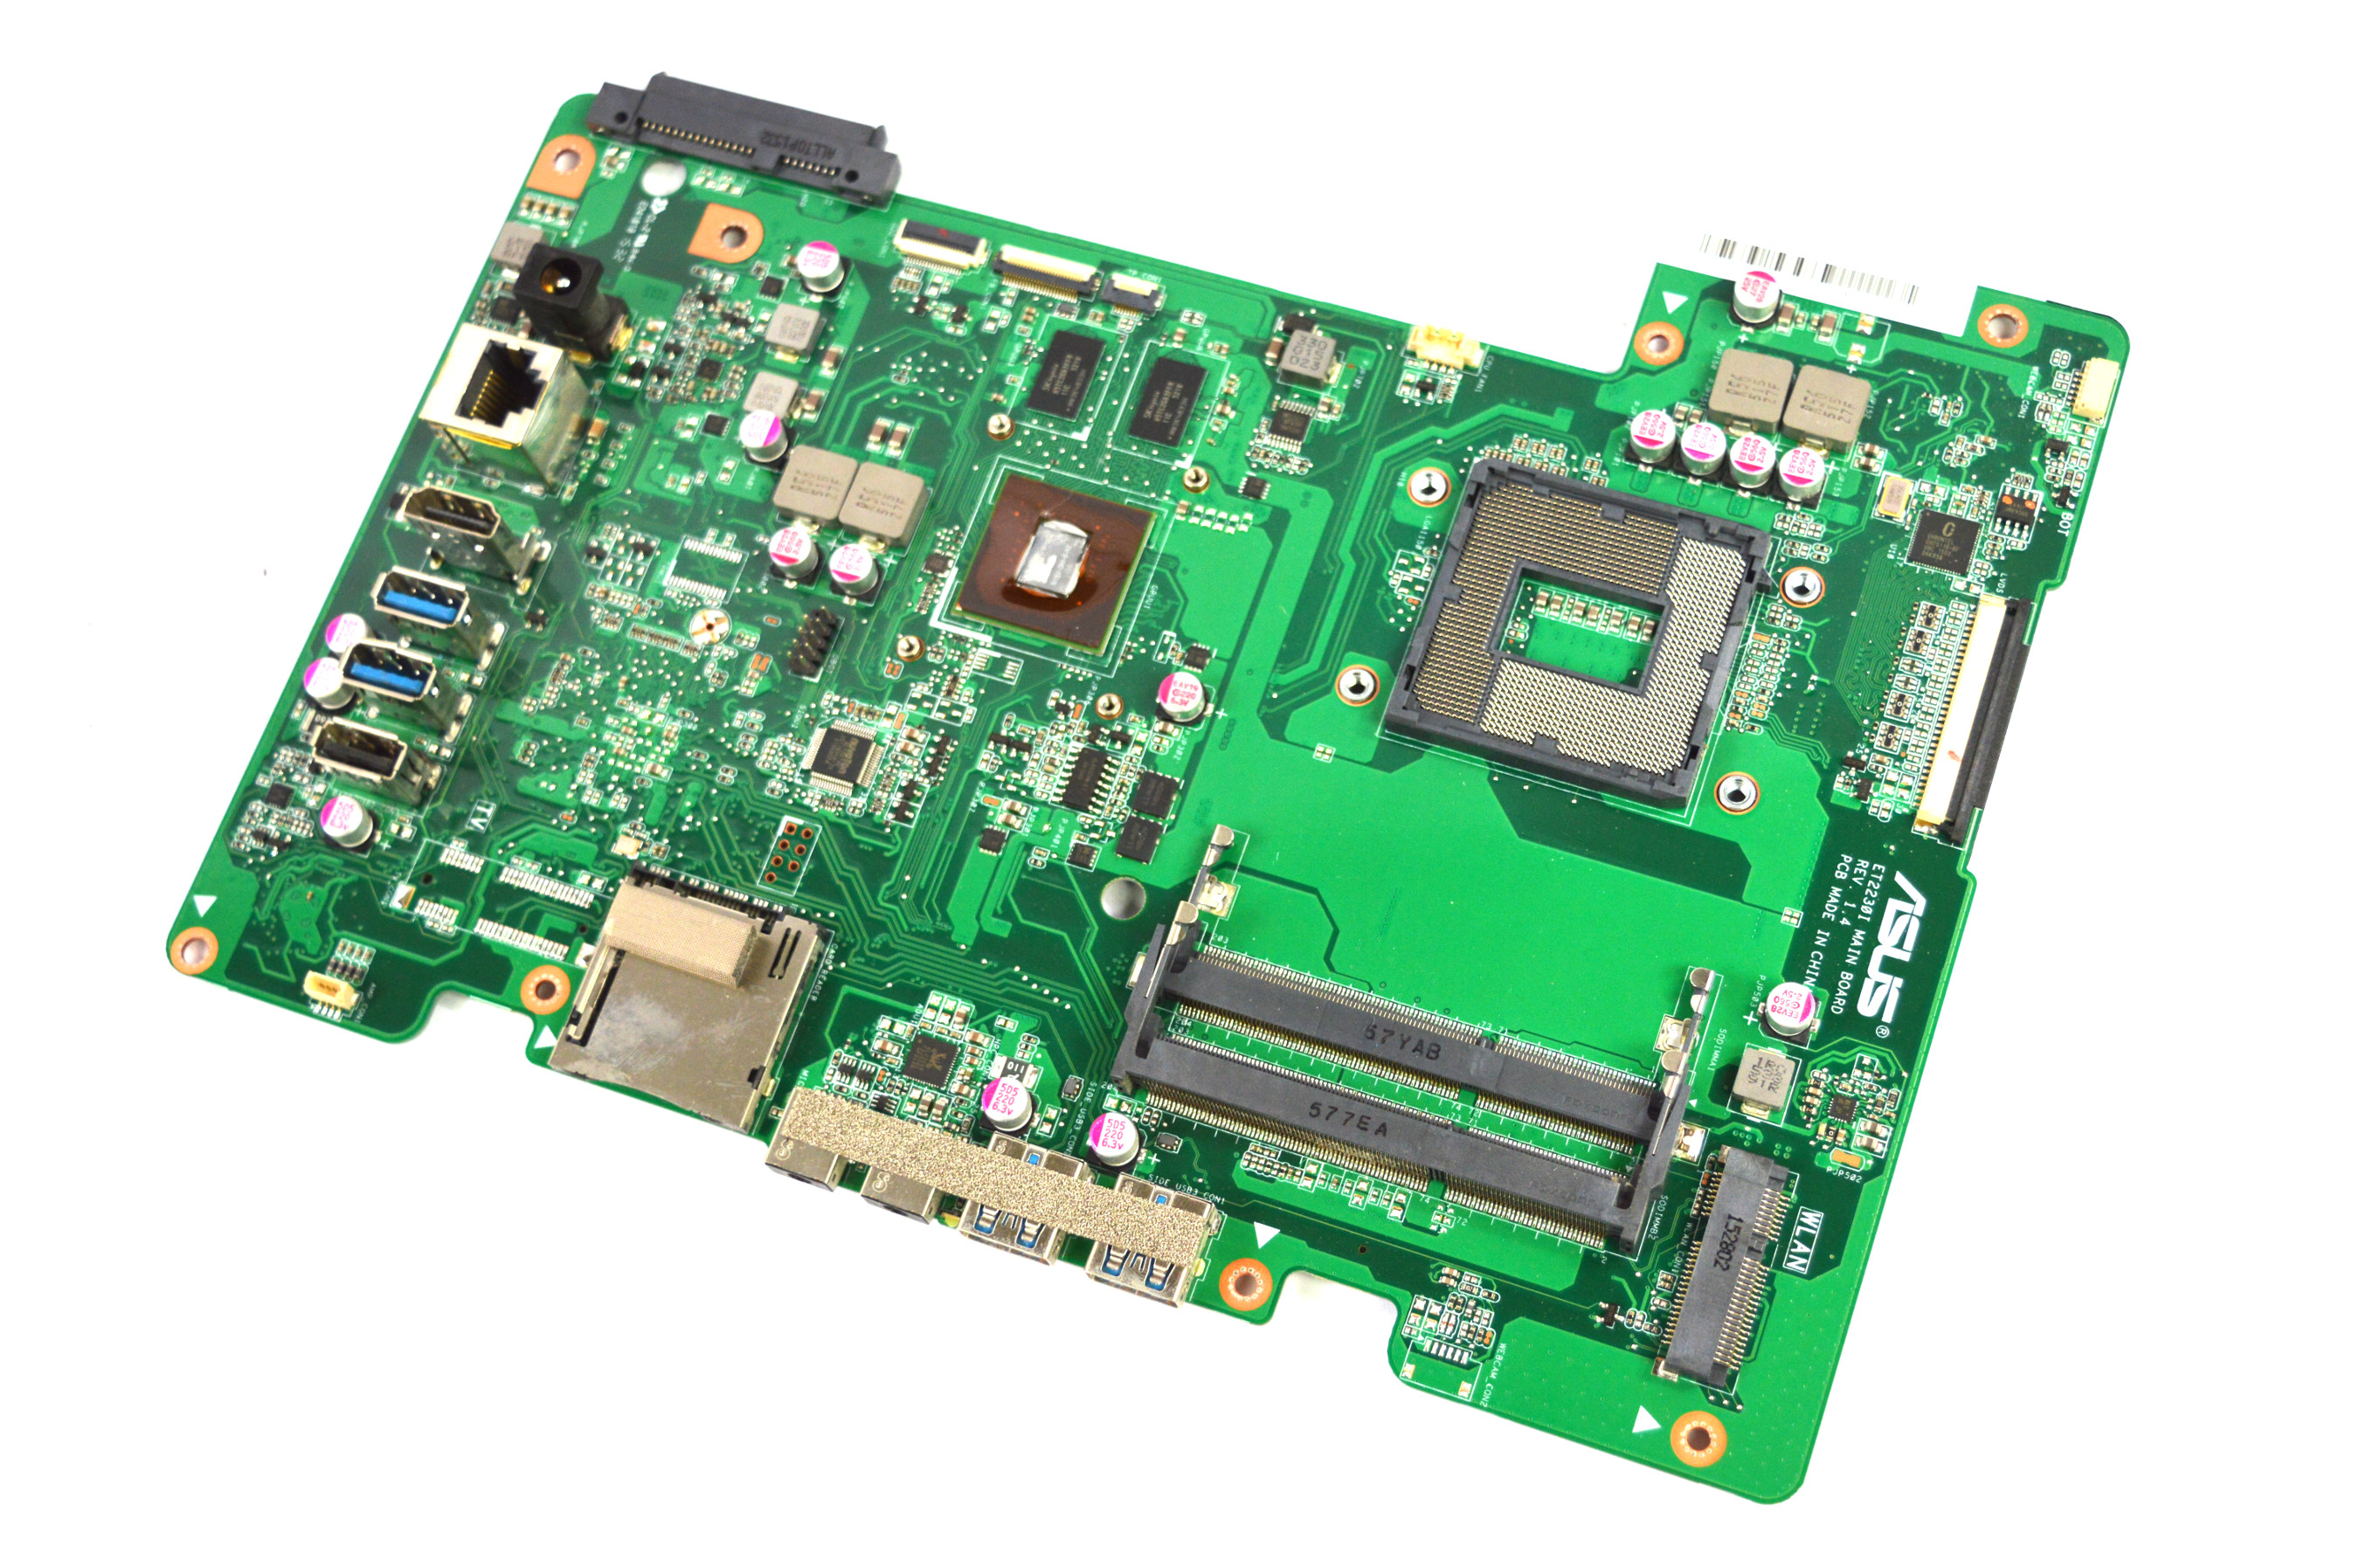 60PT00W0-MB4B05 Asus Main Board Rev:1.4 /f Asus All-in-One Model:ET2230I AiO PC